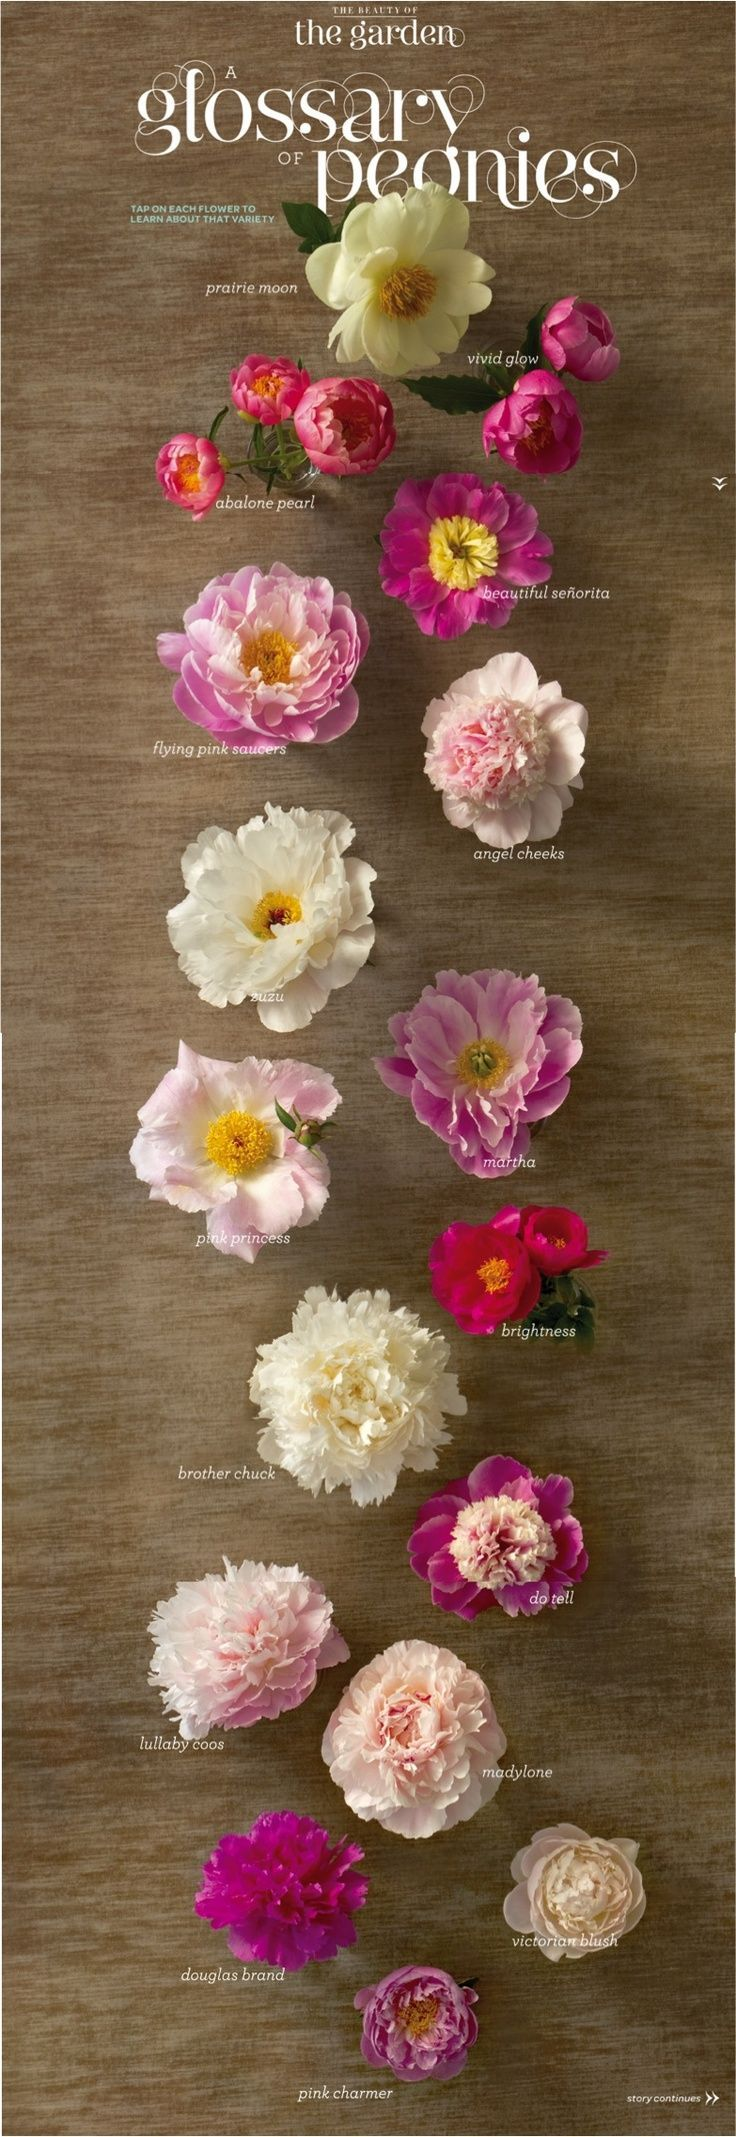 10 wedding planning infographics with interesting facts from peonies good to know to select flowers for bouquets izmirmasajfo